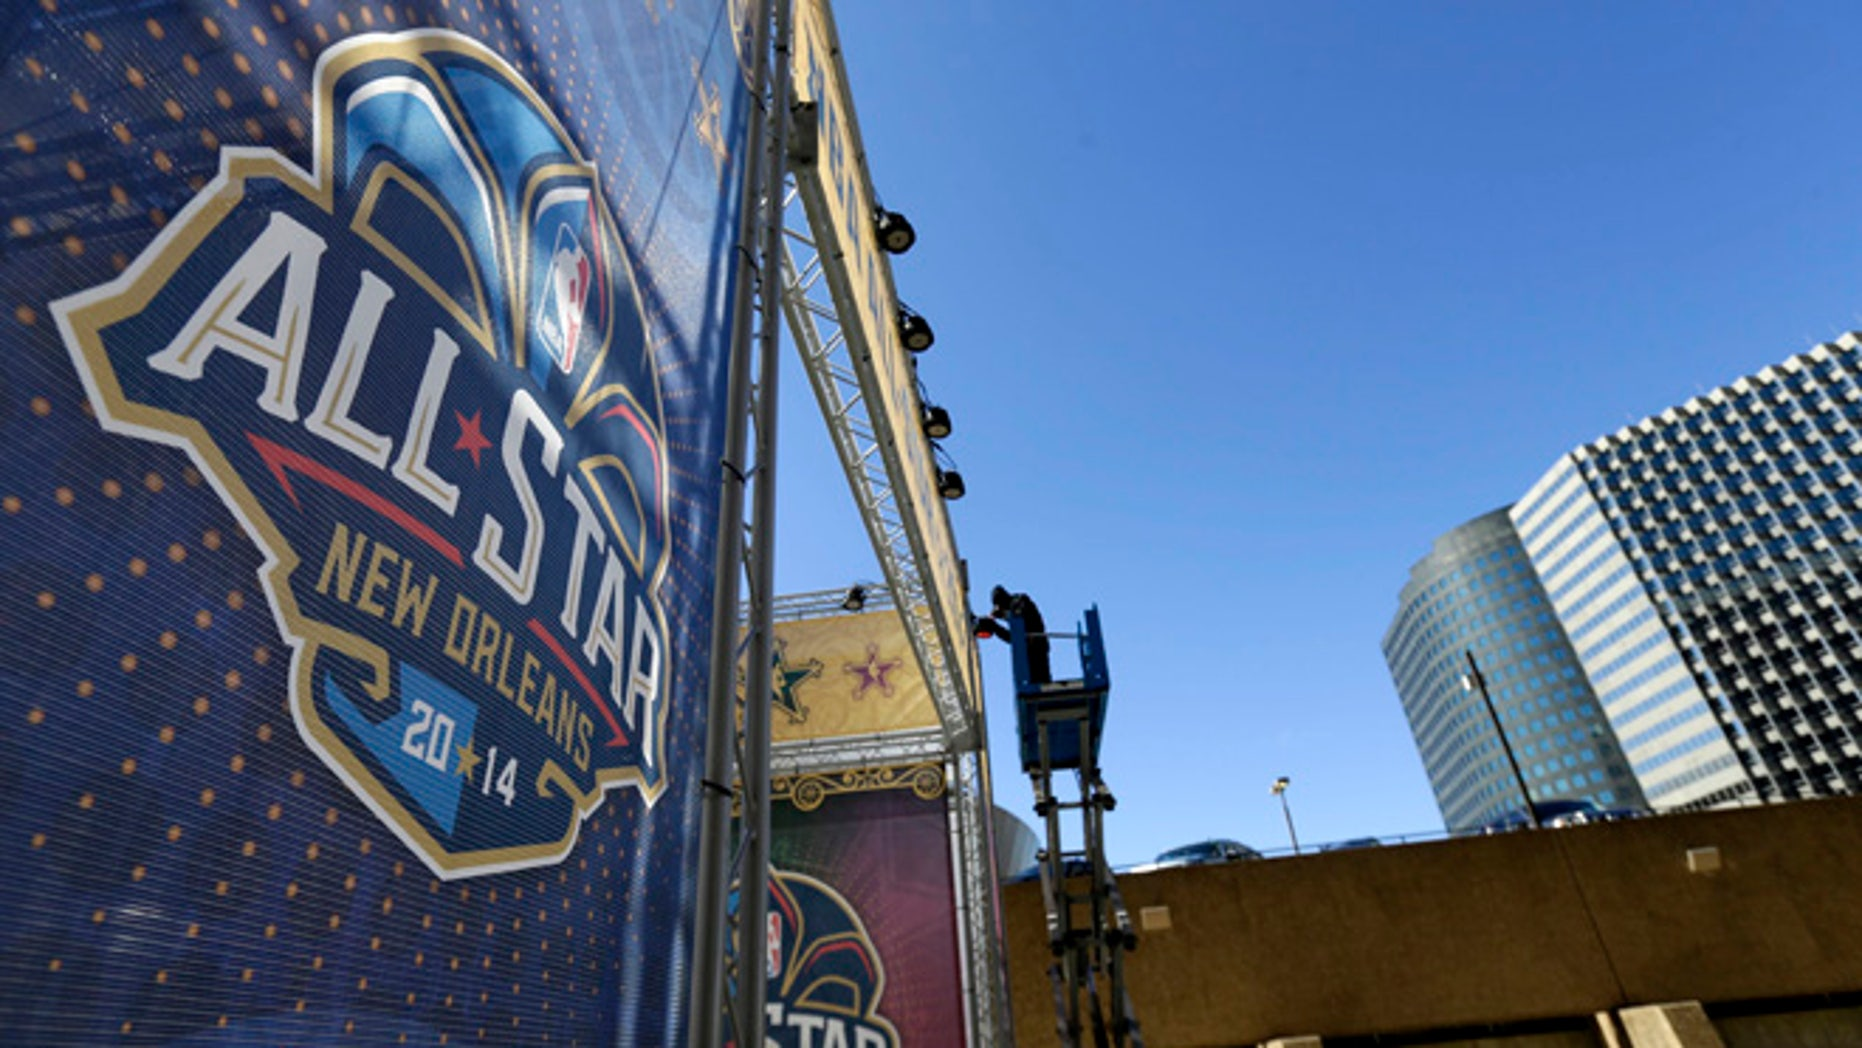 FILE - In this Feb. 13, 2014, file photo, a worker attaches a banner to a scaffolding in New Orleans in preparation of the NBA All-Star basketball game. (AP Photo/Gerald Herbert, File)